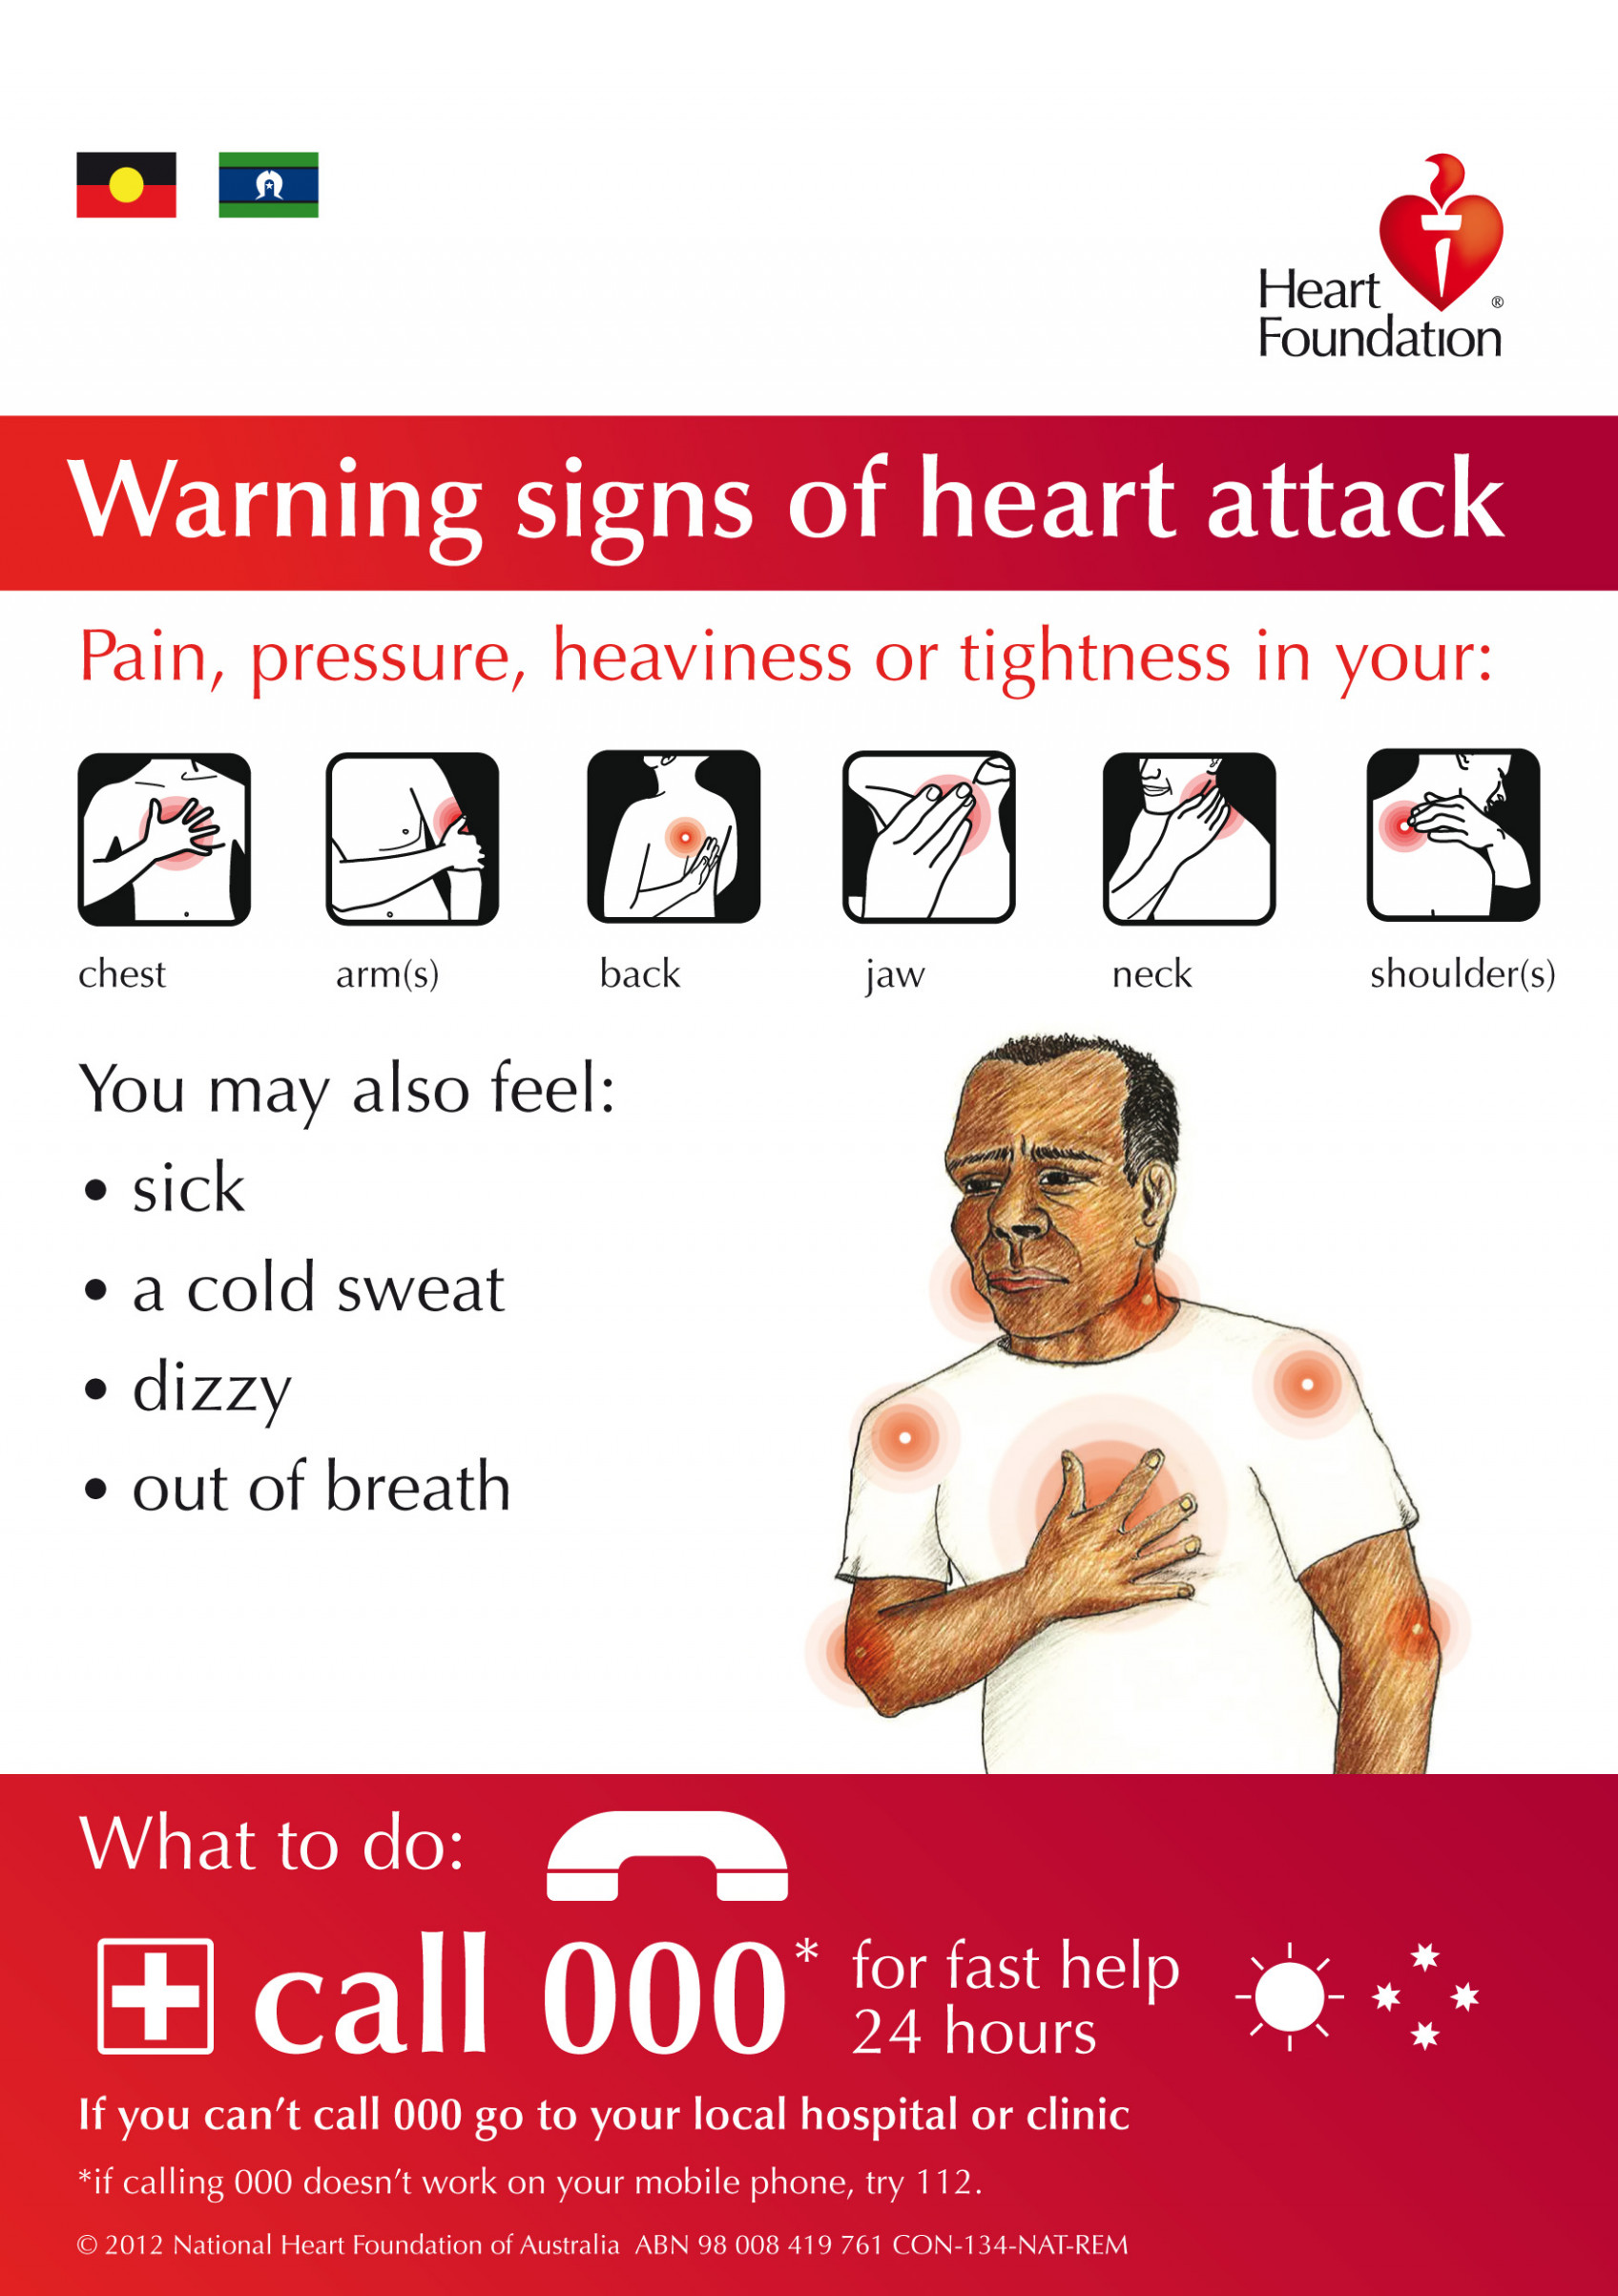 Heart Attack Warning Signs Resources | The Heart Foundation - Healthy Recipes Heart Foundation